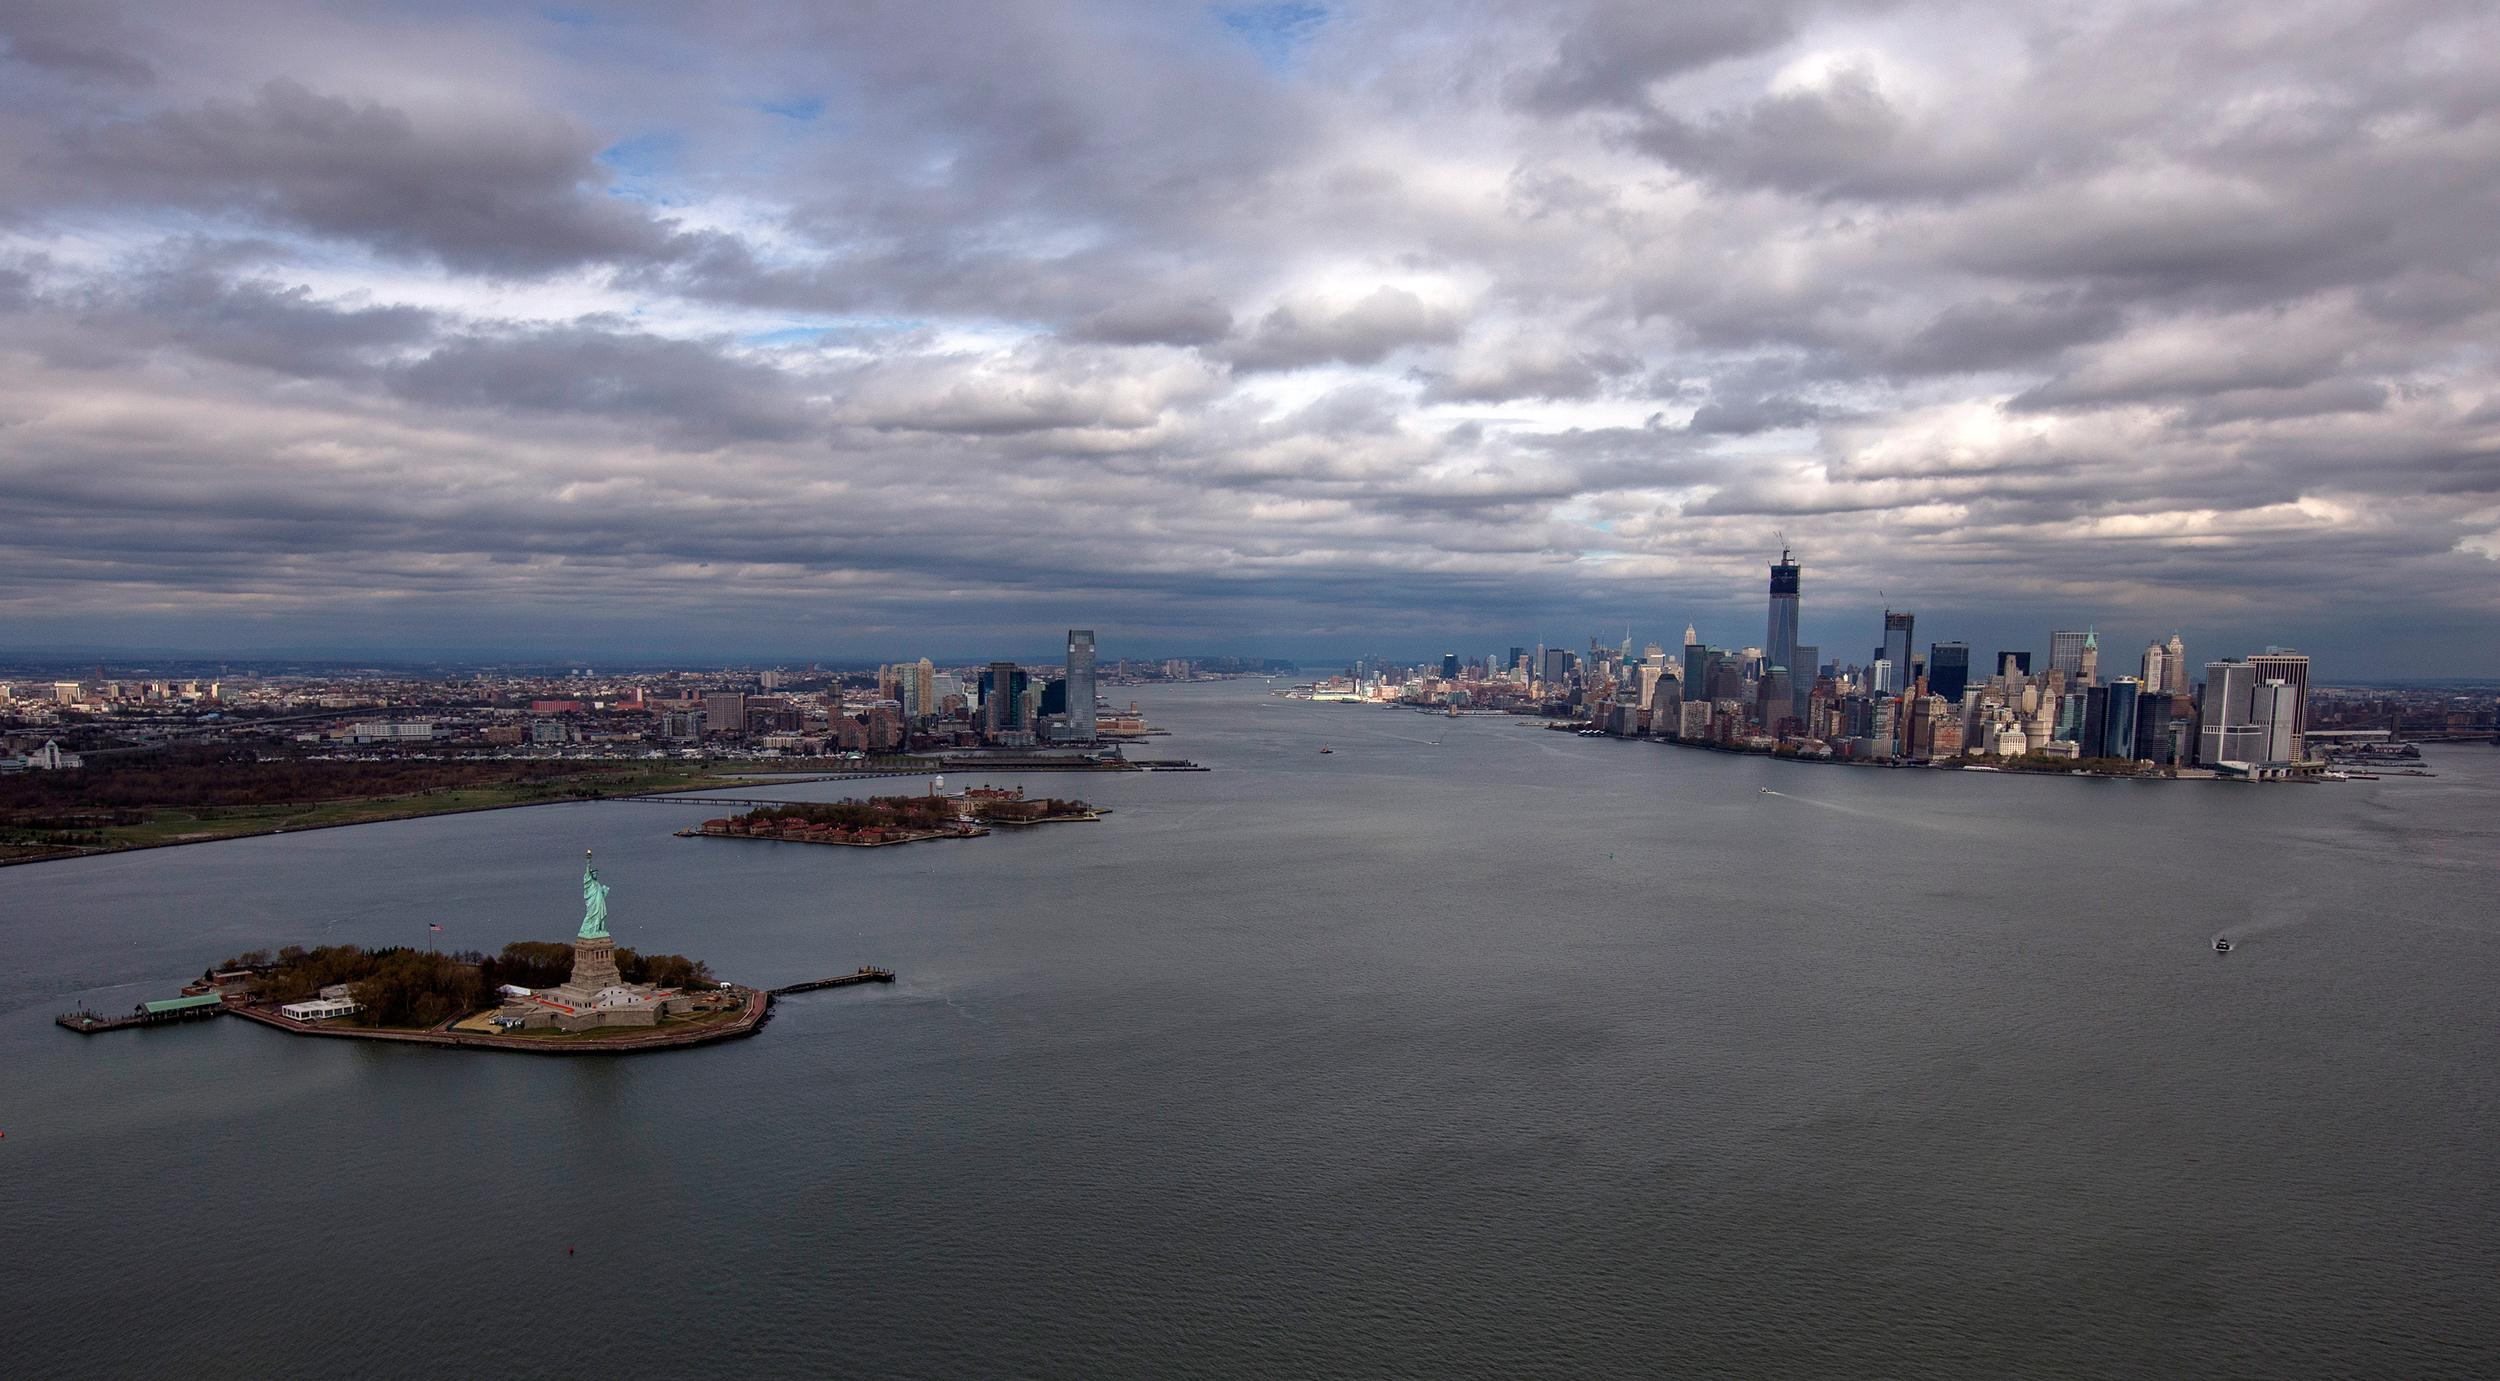 Image: The Statue of Liberty, Liberty Island and Ellis Islands are seen to the left next to New York's Lower Manhattan skyline